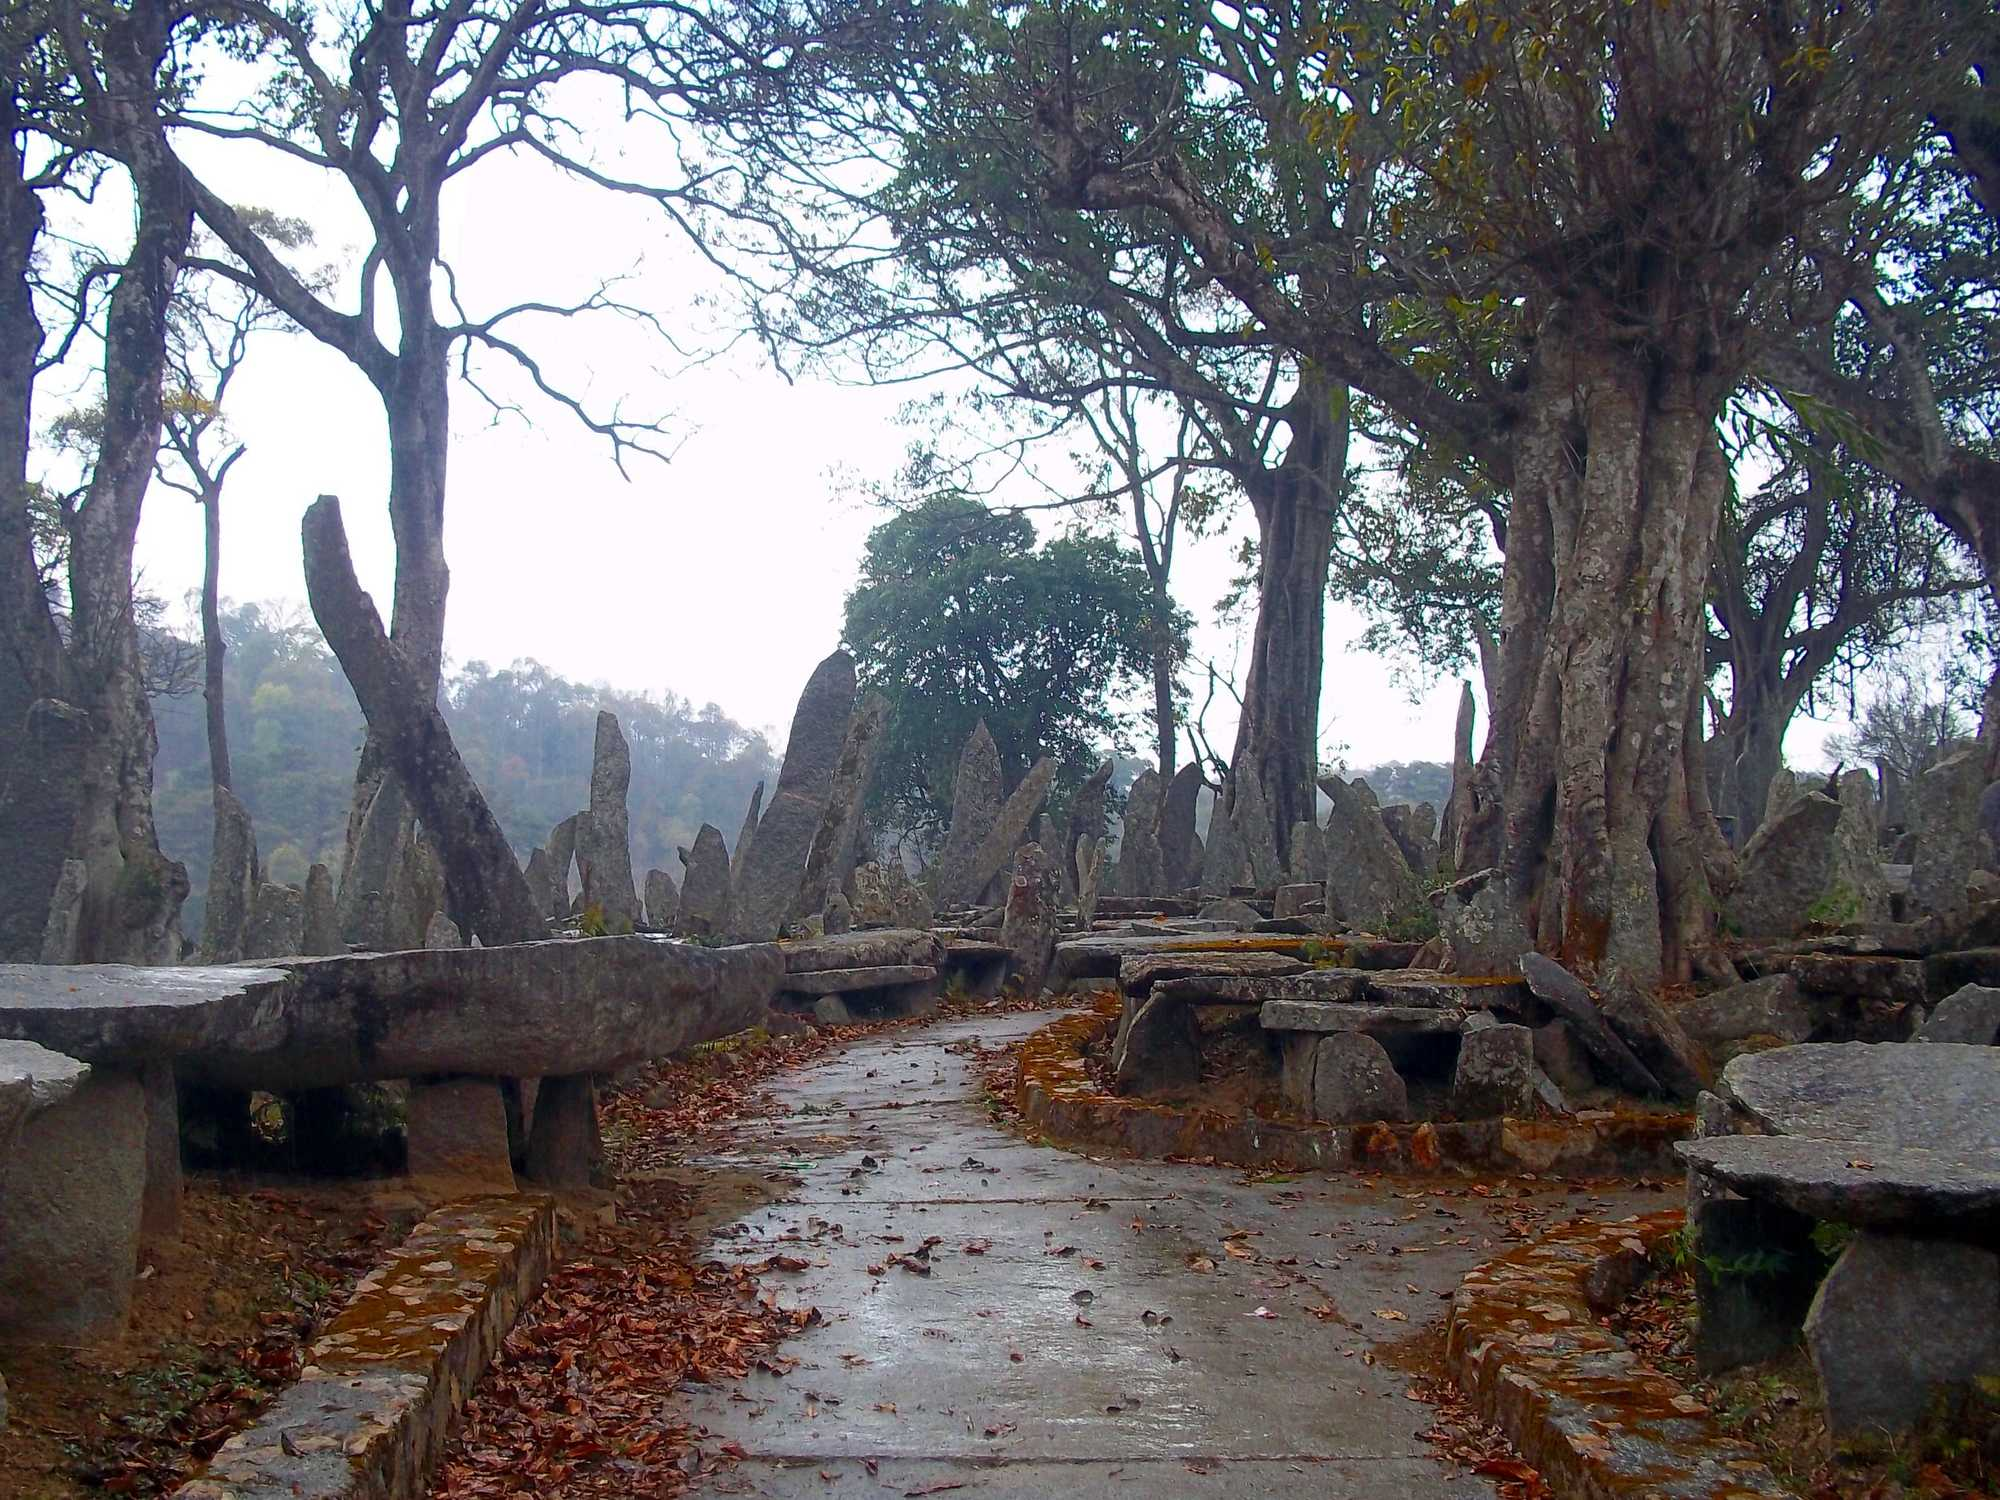 What is a lesser known gem of Meghalaya in northeast India?